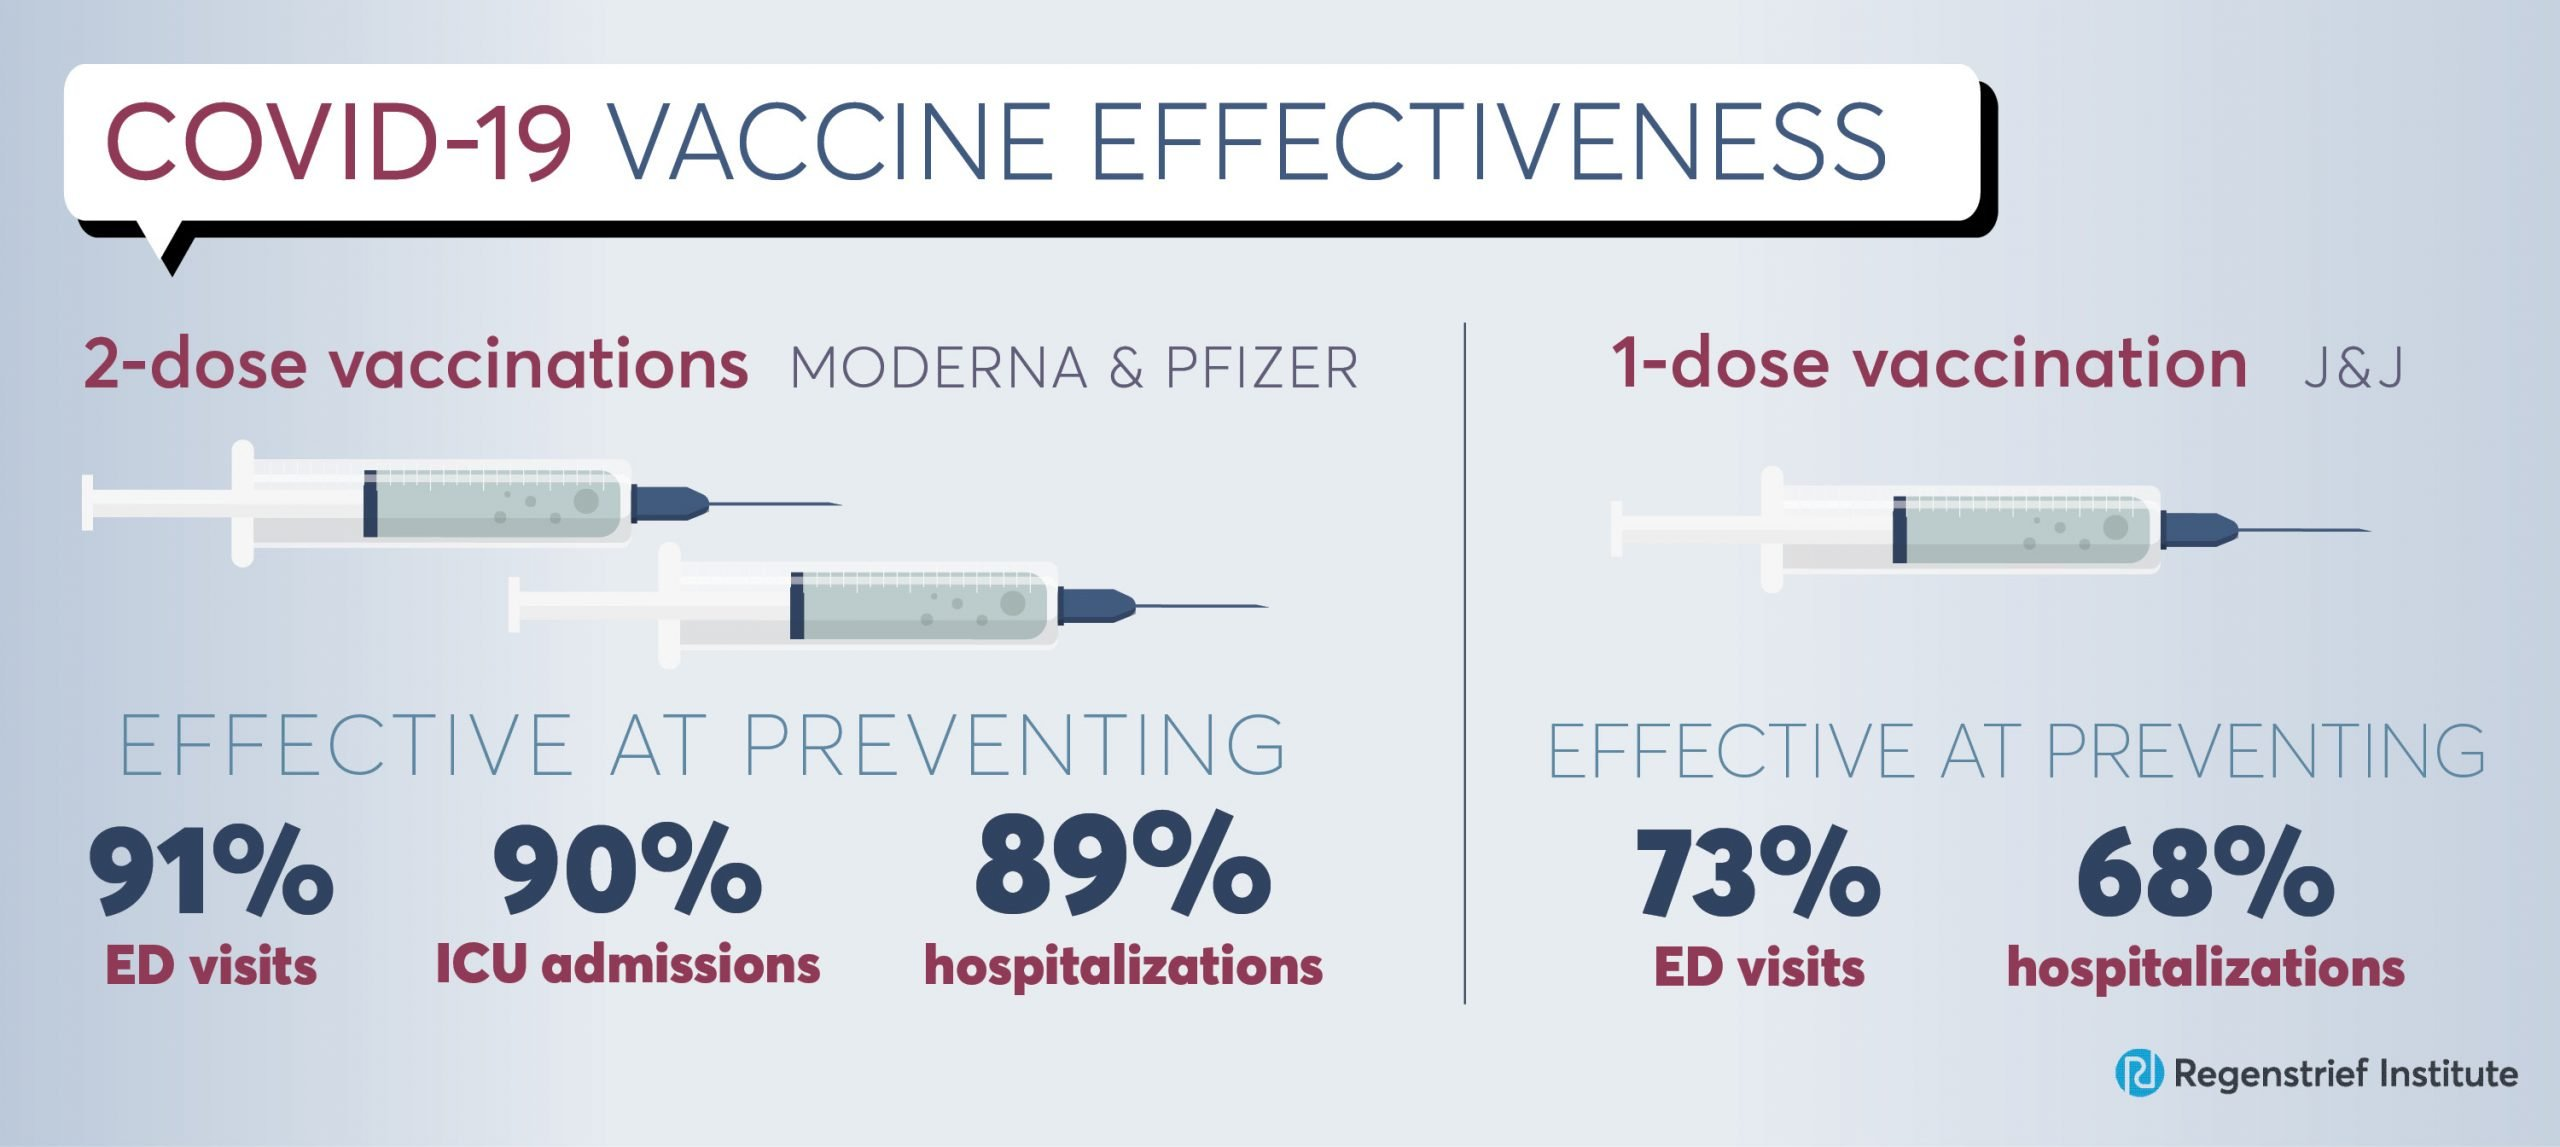 COVID-19 vaccines are highly effective in preventing hospitalizations, emergency visits